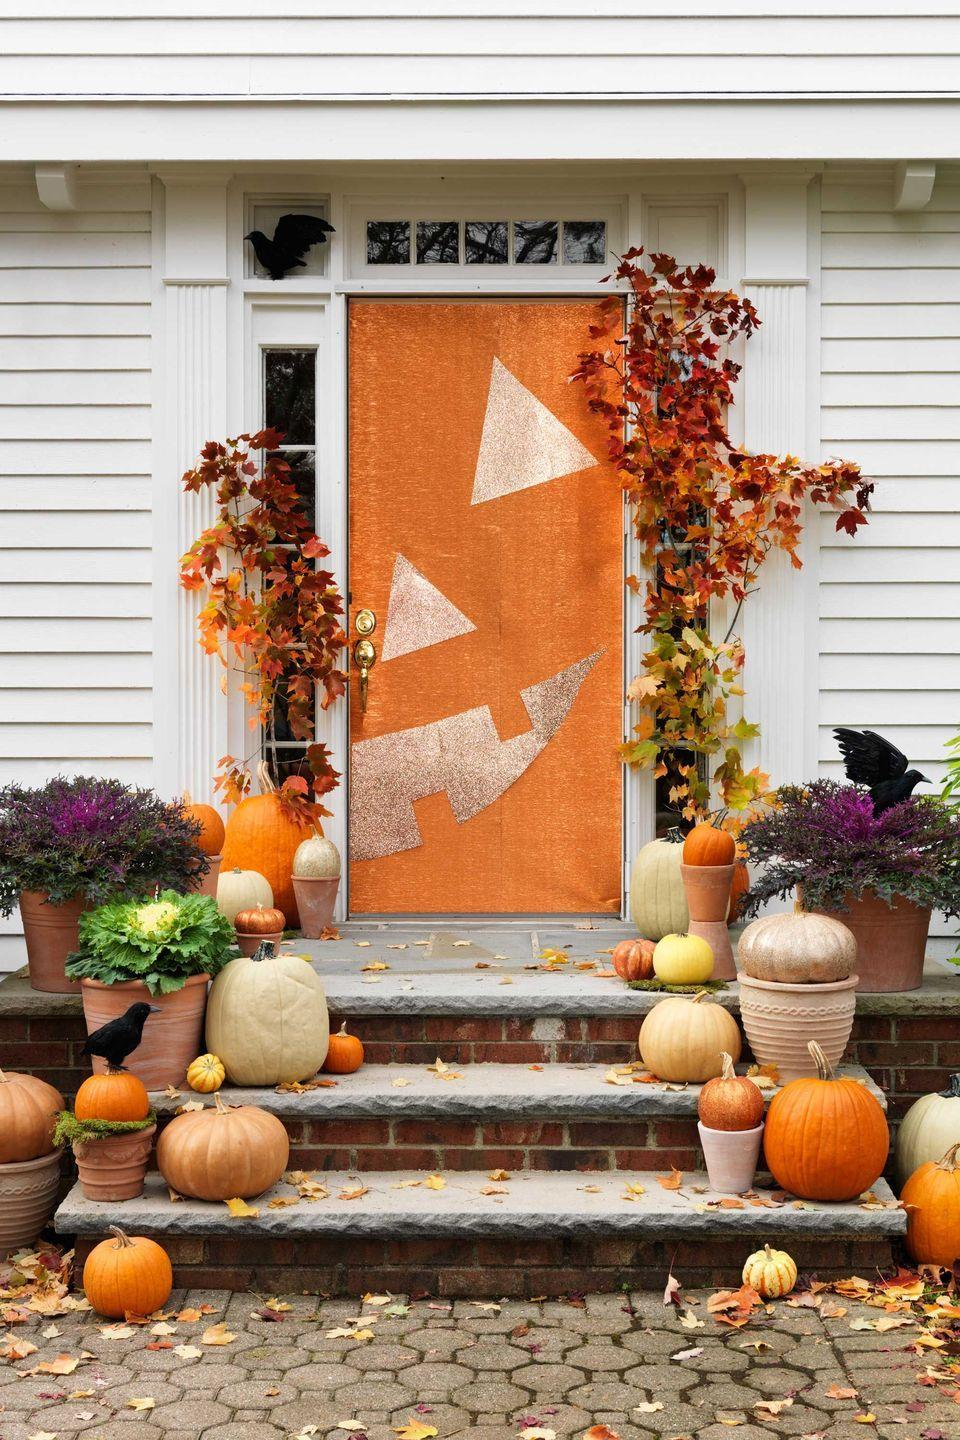 """<p>1. Trim orange wrapping paper to the height of the door; secure with masking tape.</p><p>2. Overlap another sheet to cover the rest of the door; tape down.</p><p>3. Lay gold glitter paper facedown and use a ruler to draw an eye (a triangle with 12"""" sides), nose (a triangle with 10"""" sides) and lopsided smile.</p><p>4. Cut out, arrange and tape to the door as shown.</p><p>5. Cut a small hole in the top of each large pumpkin with a craft knife.</p><p>6. Insert the leaf branches; push down until secure.</p><p>7. To keep the branches upright, tap a picture nail into either side of the door frame; secure each branch with fishing line.</p><p>8. Spray-glue small pumpkins; dust with glitter; let dry.</p><p>9. Arrange cabbages and pumpkins in planters on the steps.</p><p>10. Add faux crows, if desired; secure with fishing line as needed.</p>"""